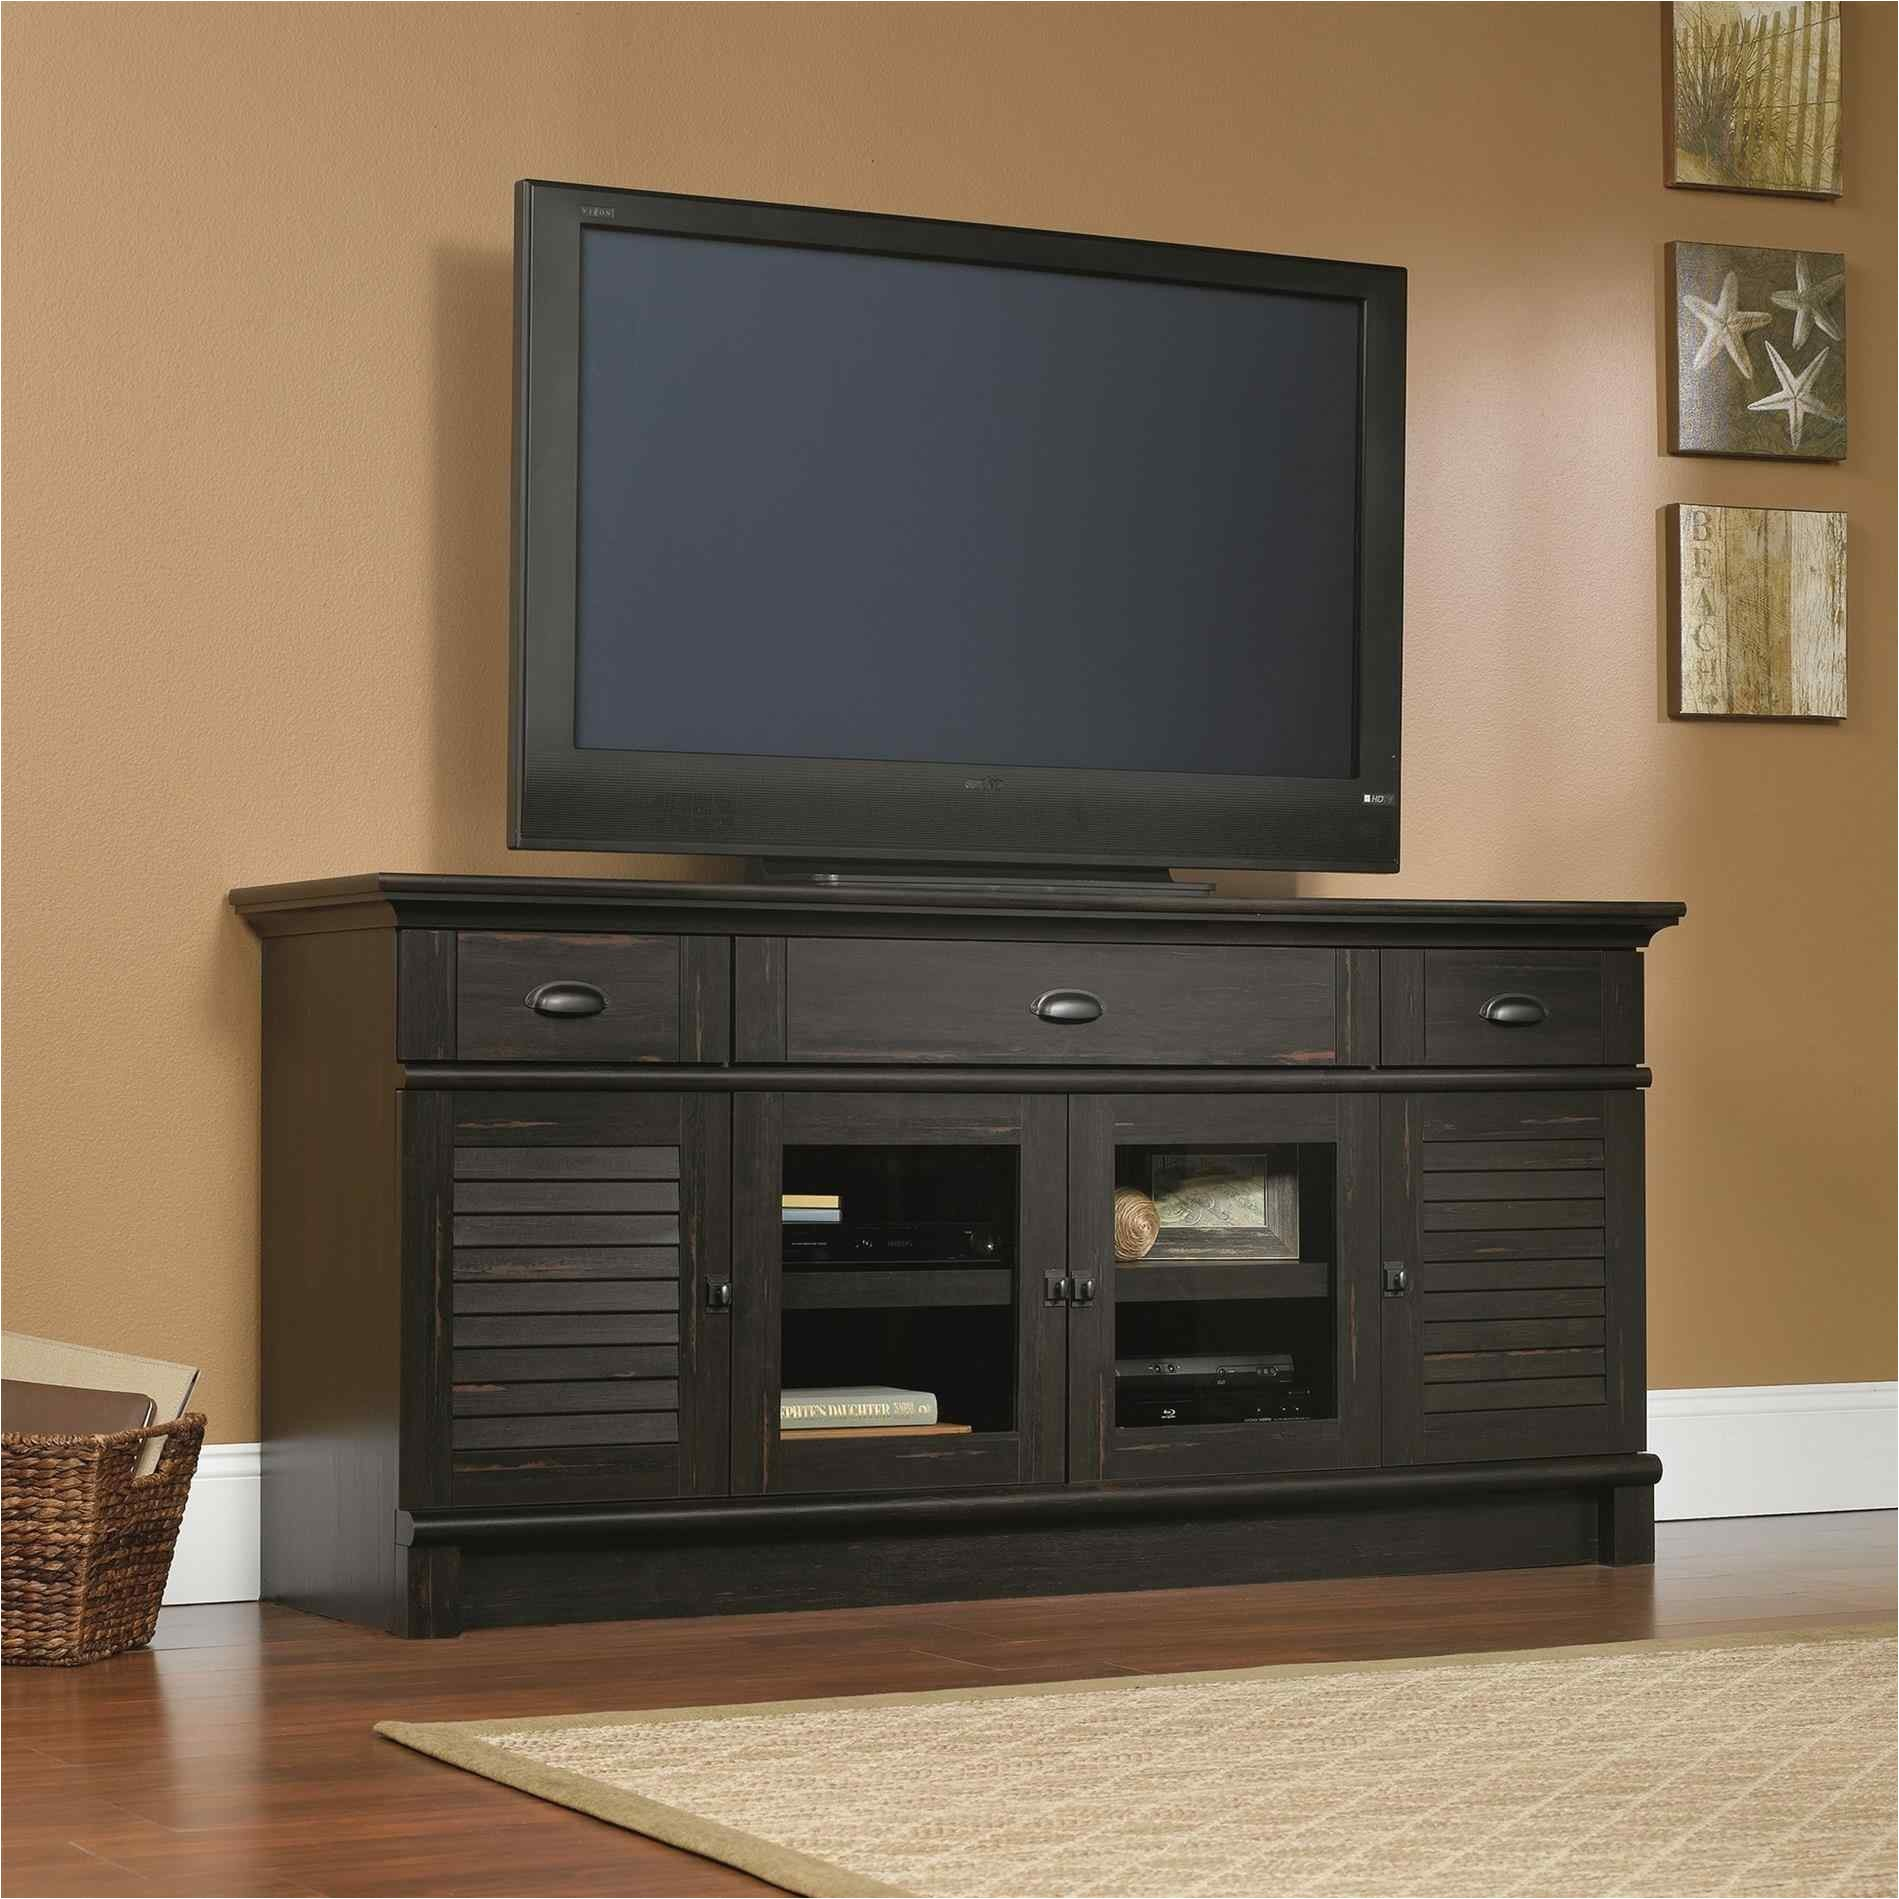 American Furniture Warehouse Tv Stands the Images Collection Of American Furniture Tv Stands